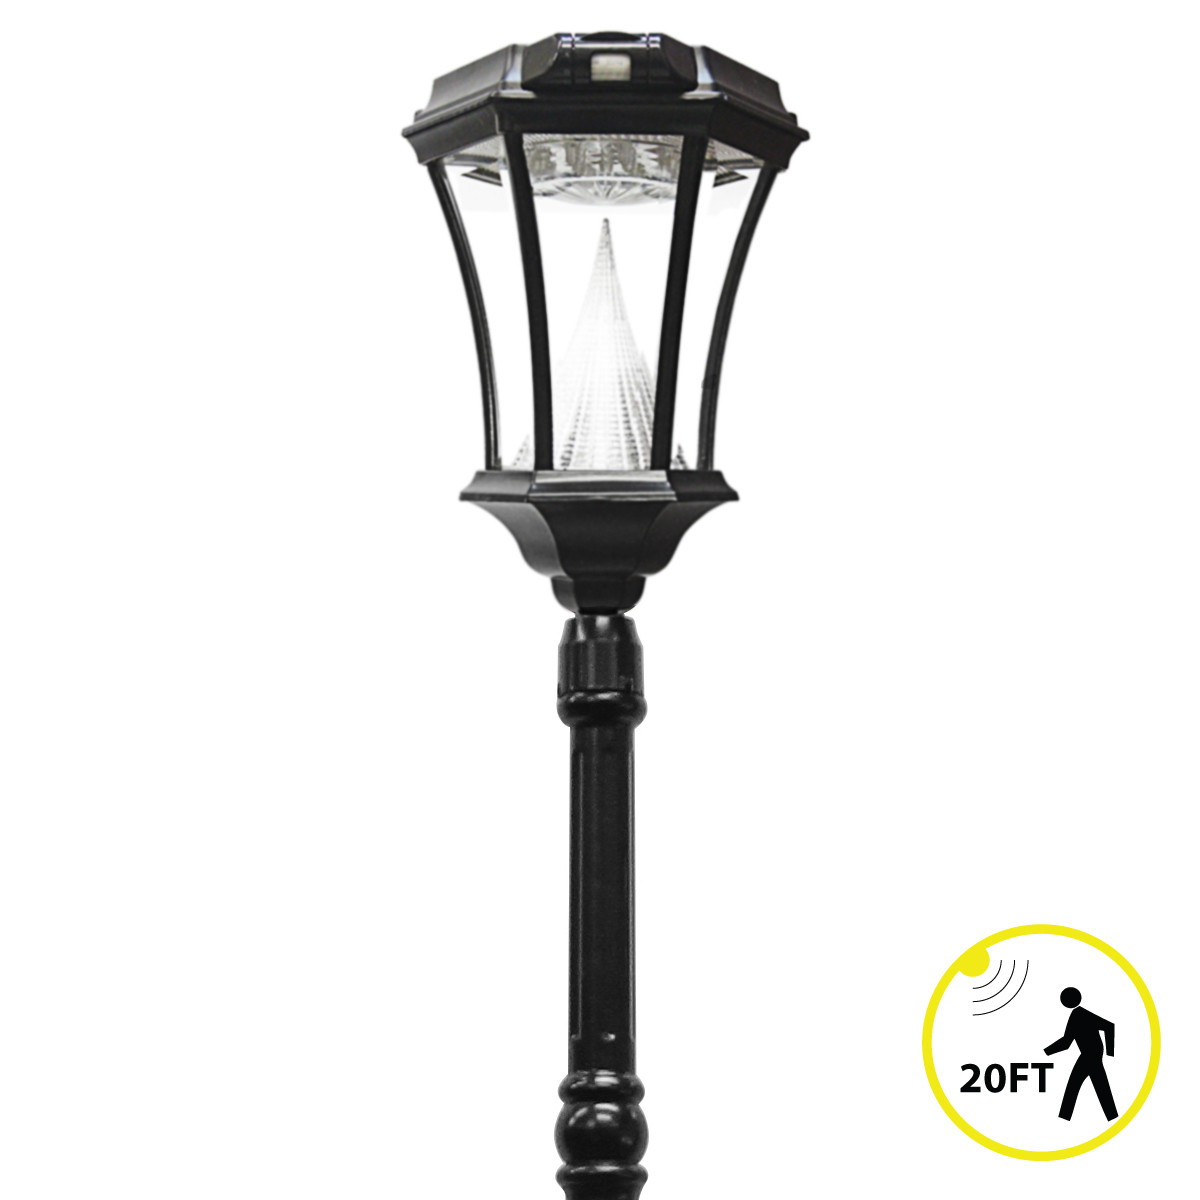 Best ideas about Lamp Post Lights . Save or Pin Victorian PIR Series – Solar Lamp Post With Motion Sensor Now.